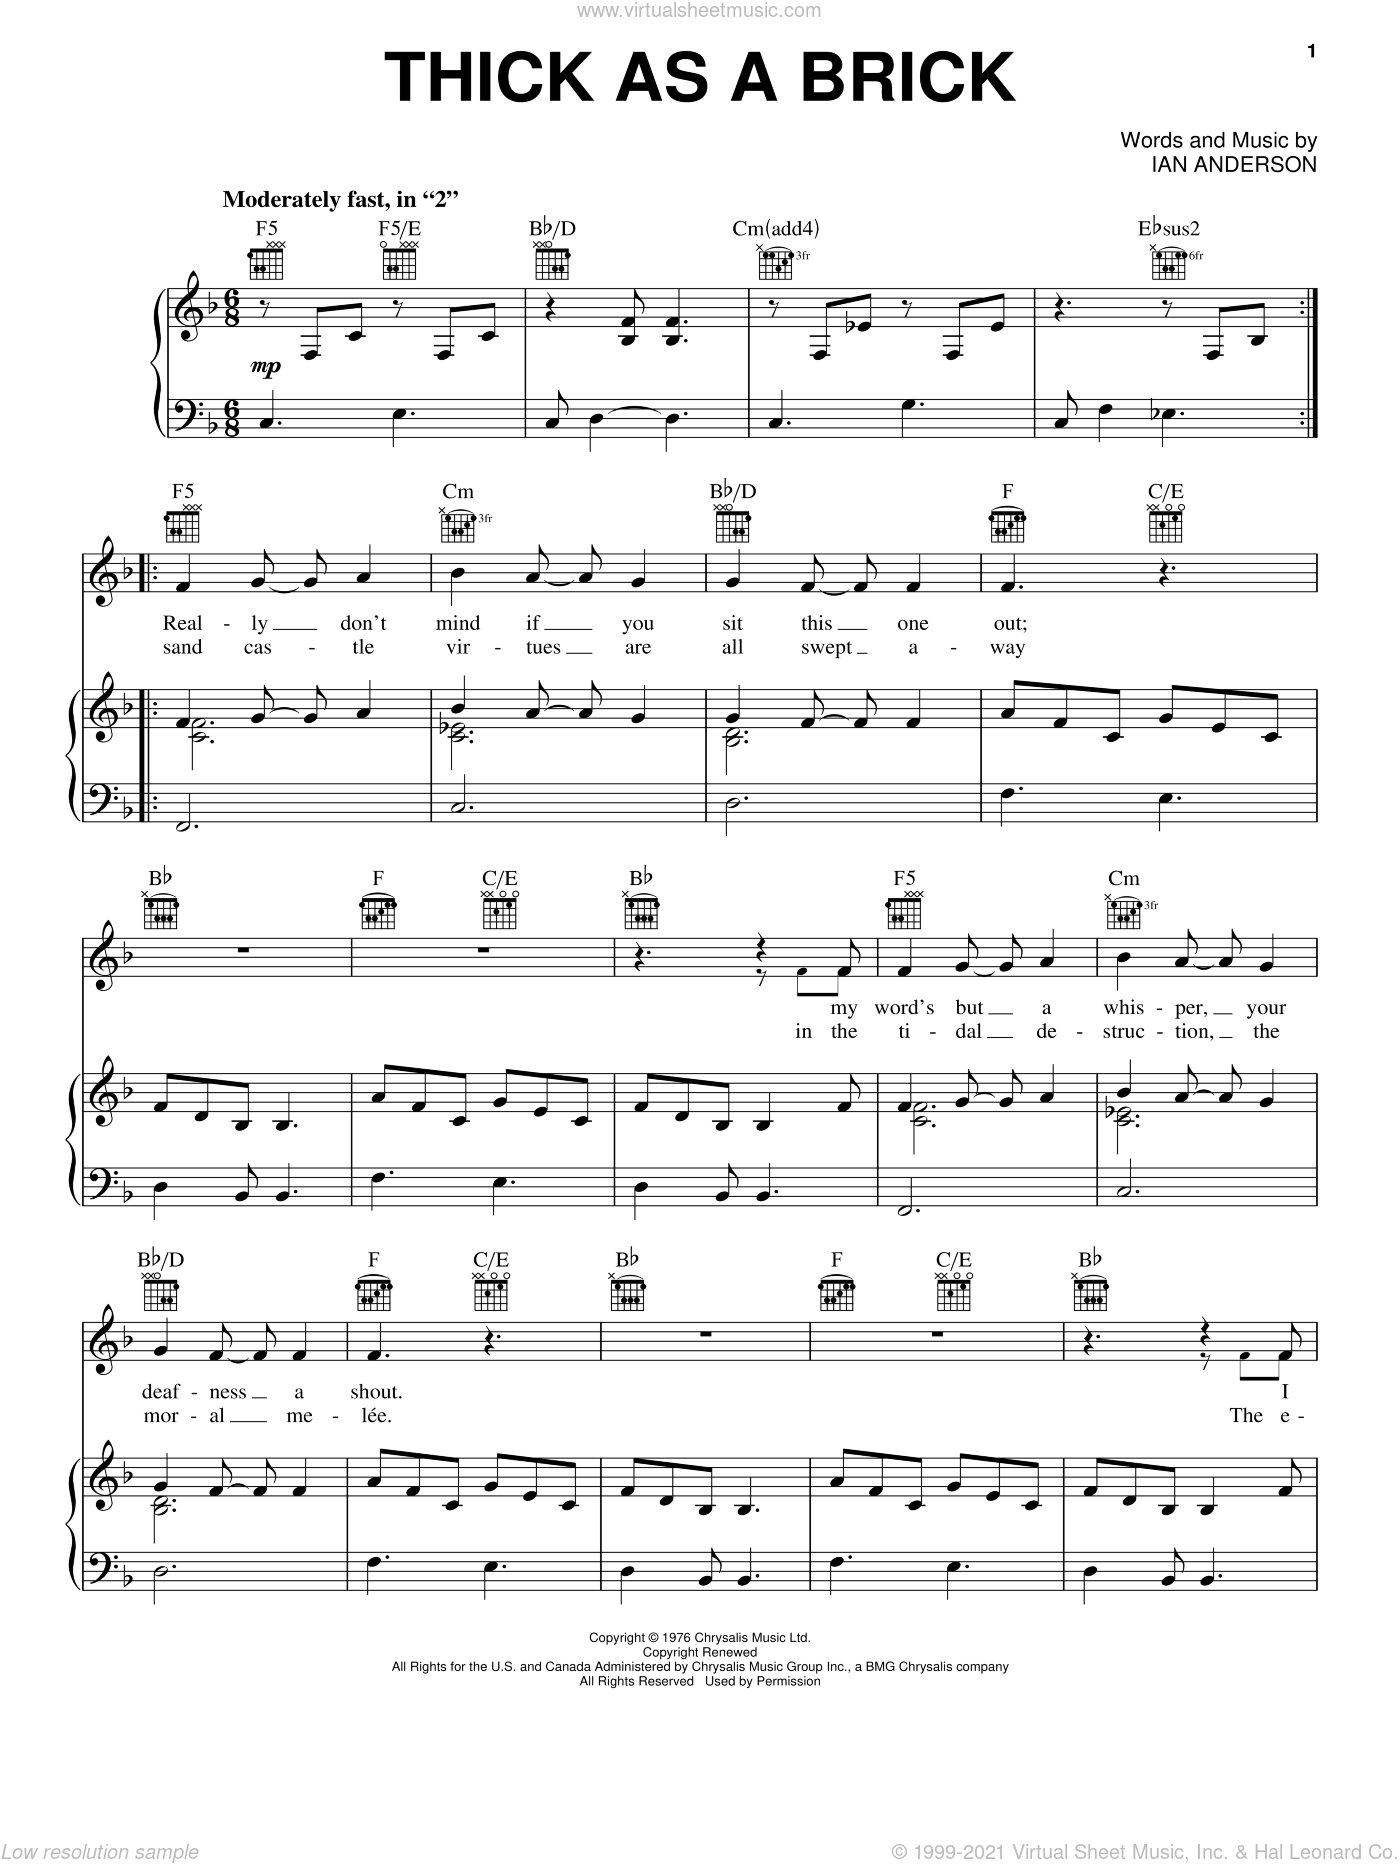 Thick As A Brick sheet music for voice, piano or guitar by Ian Anderson